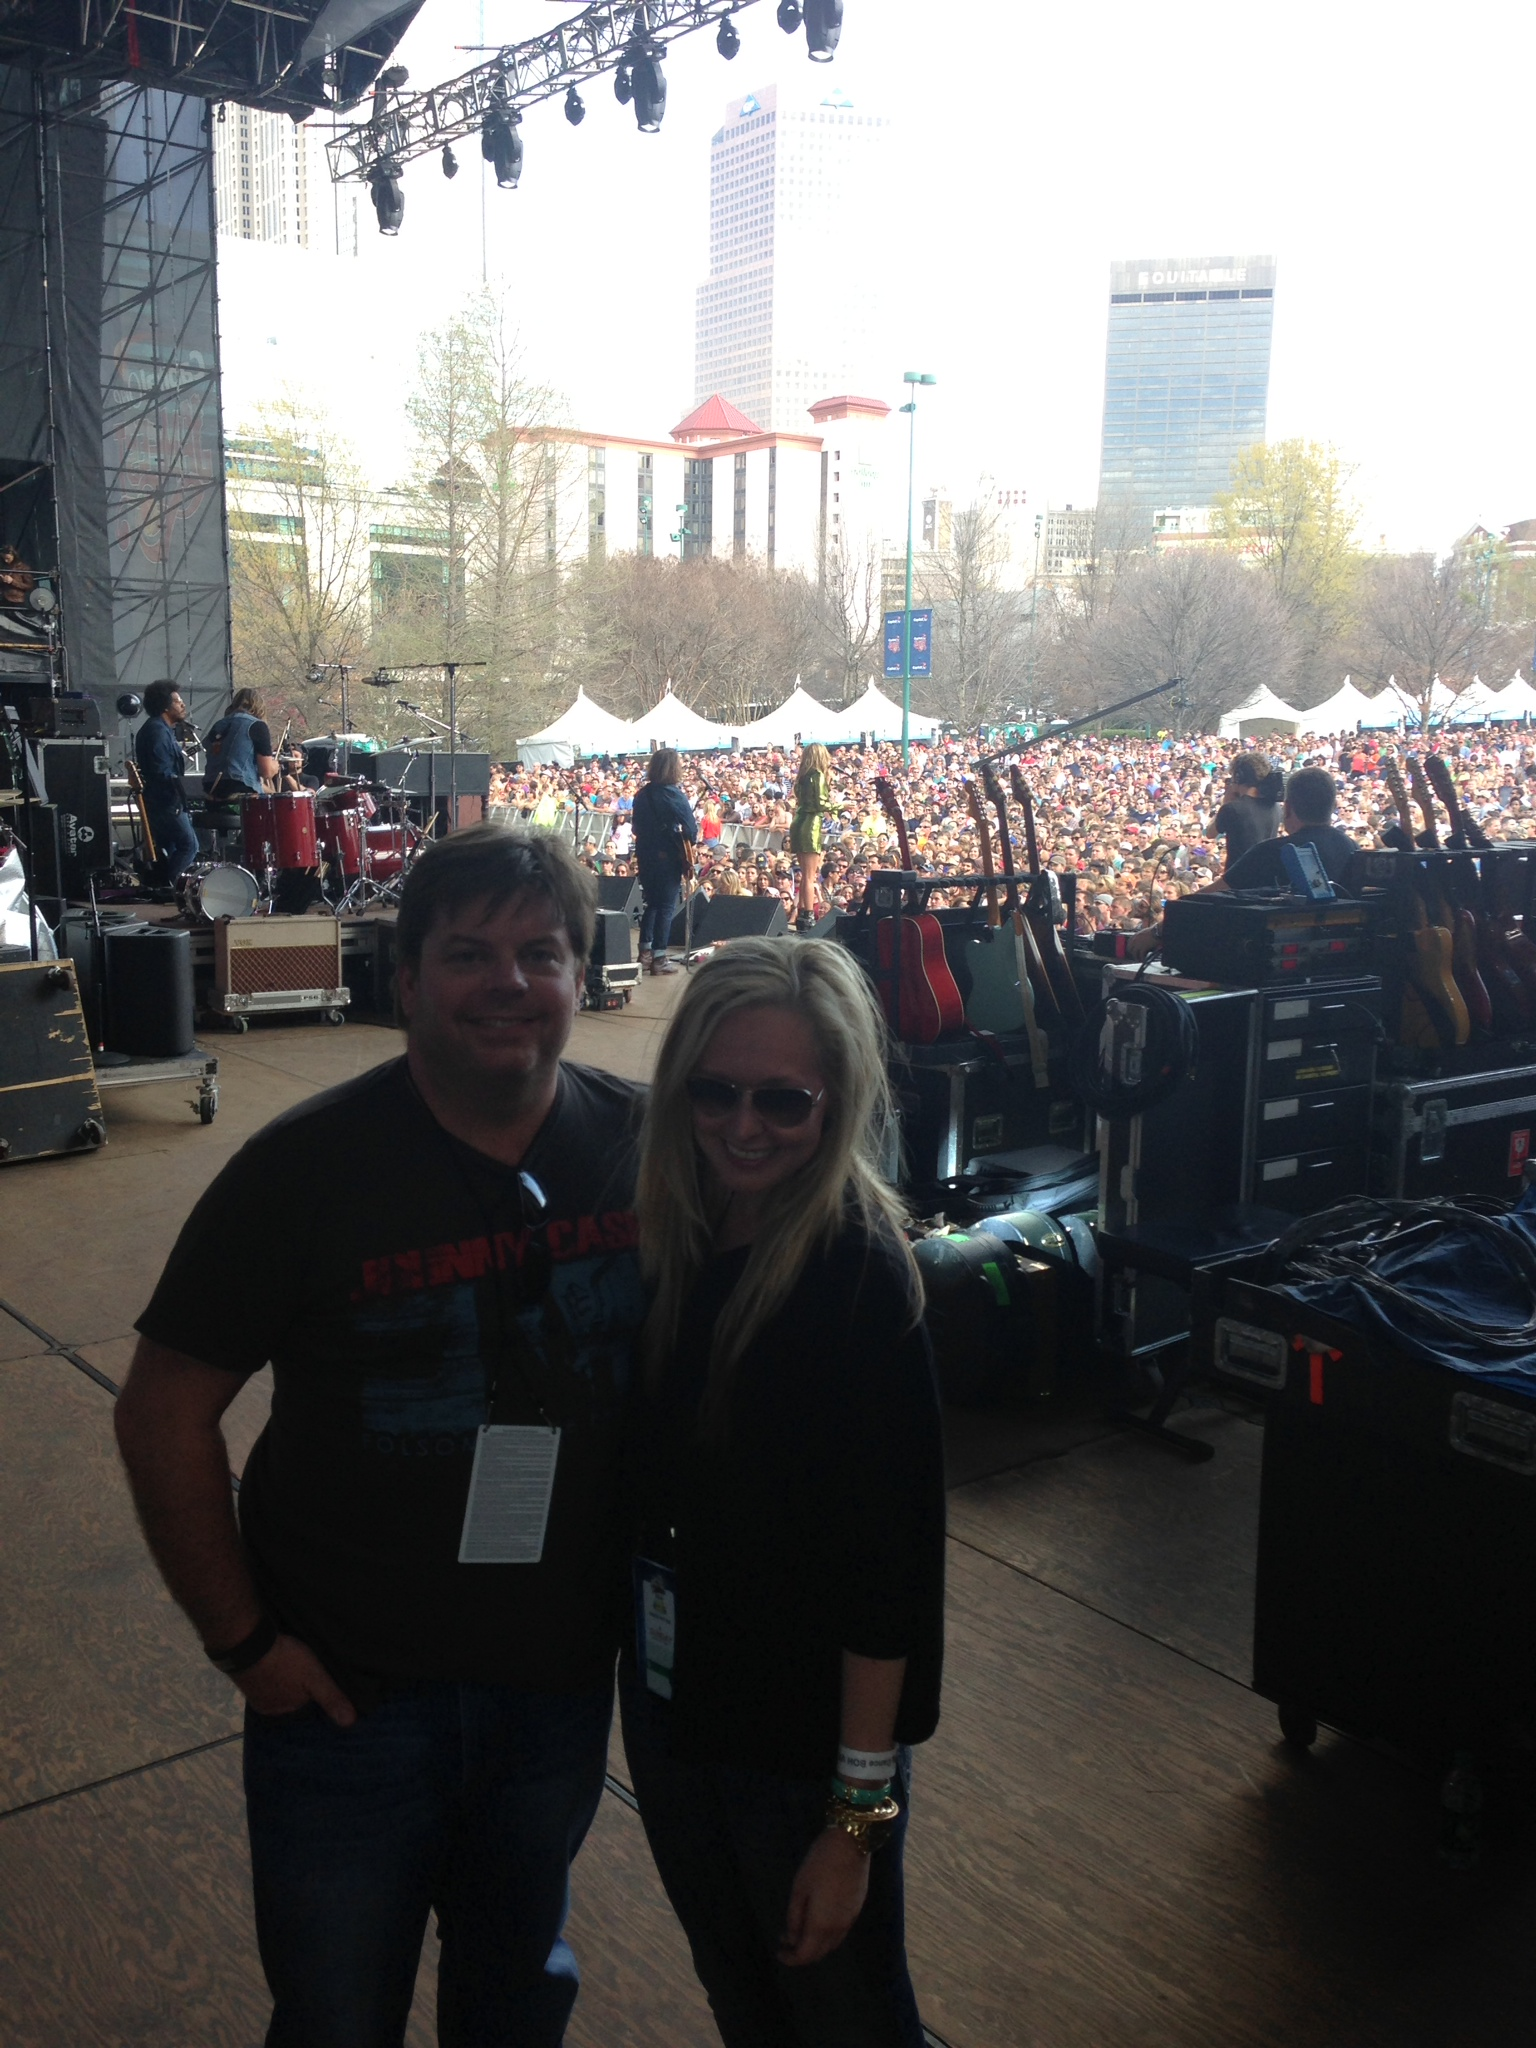 On stage for Grace Potter